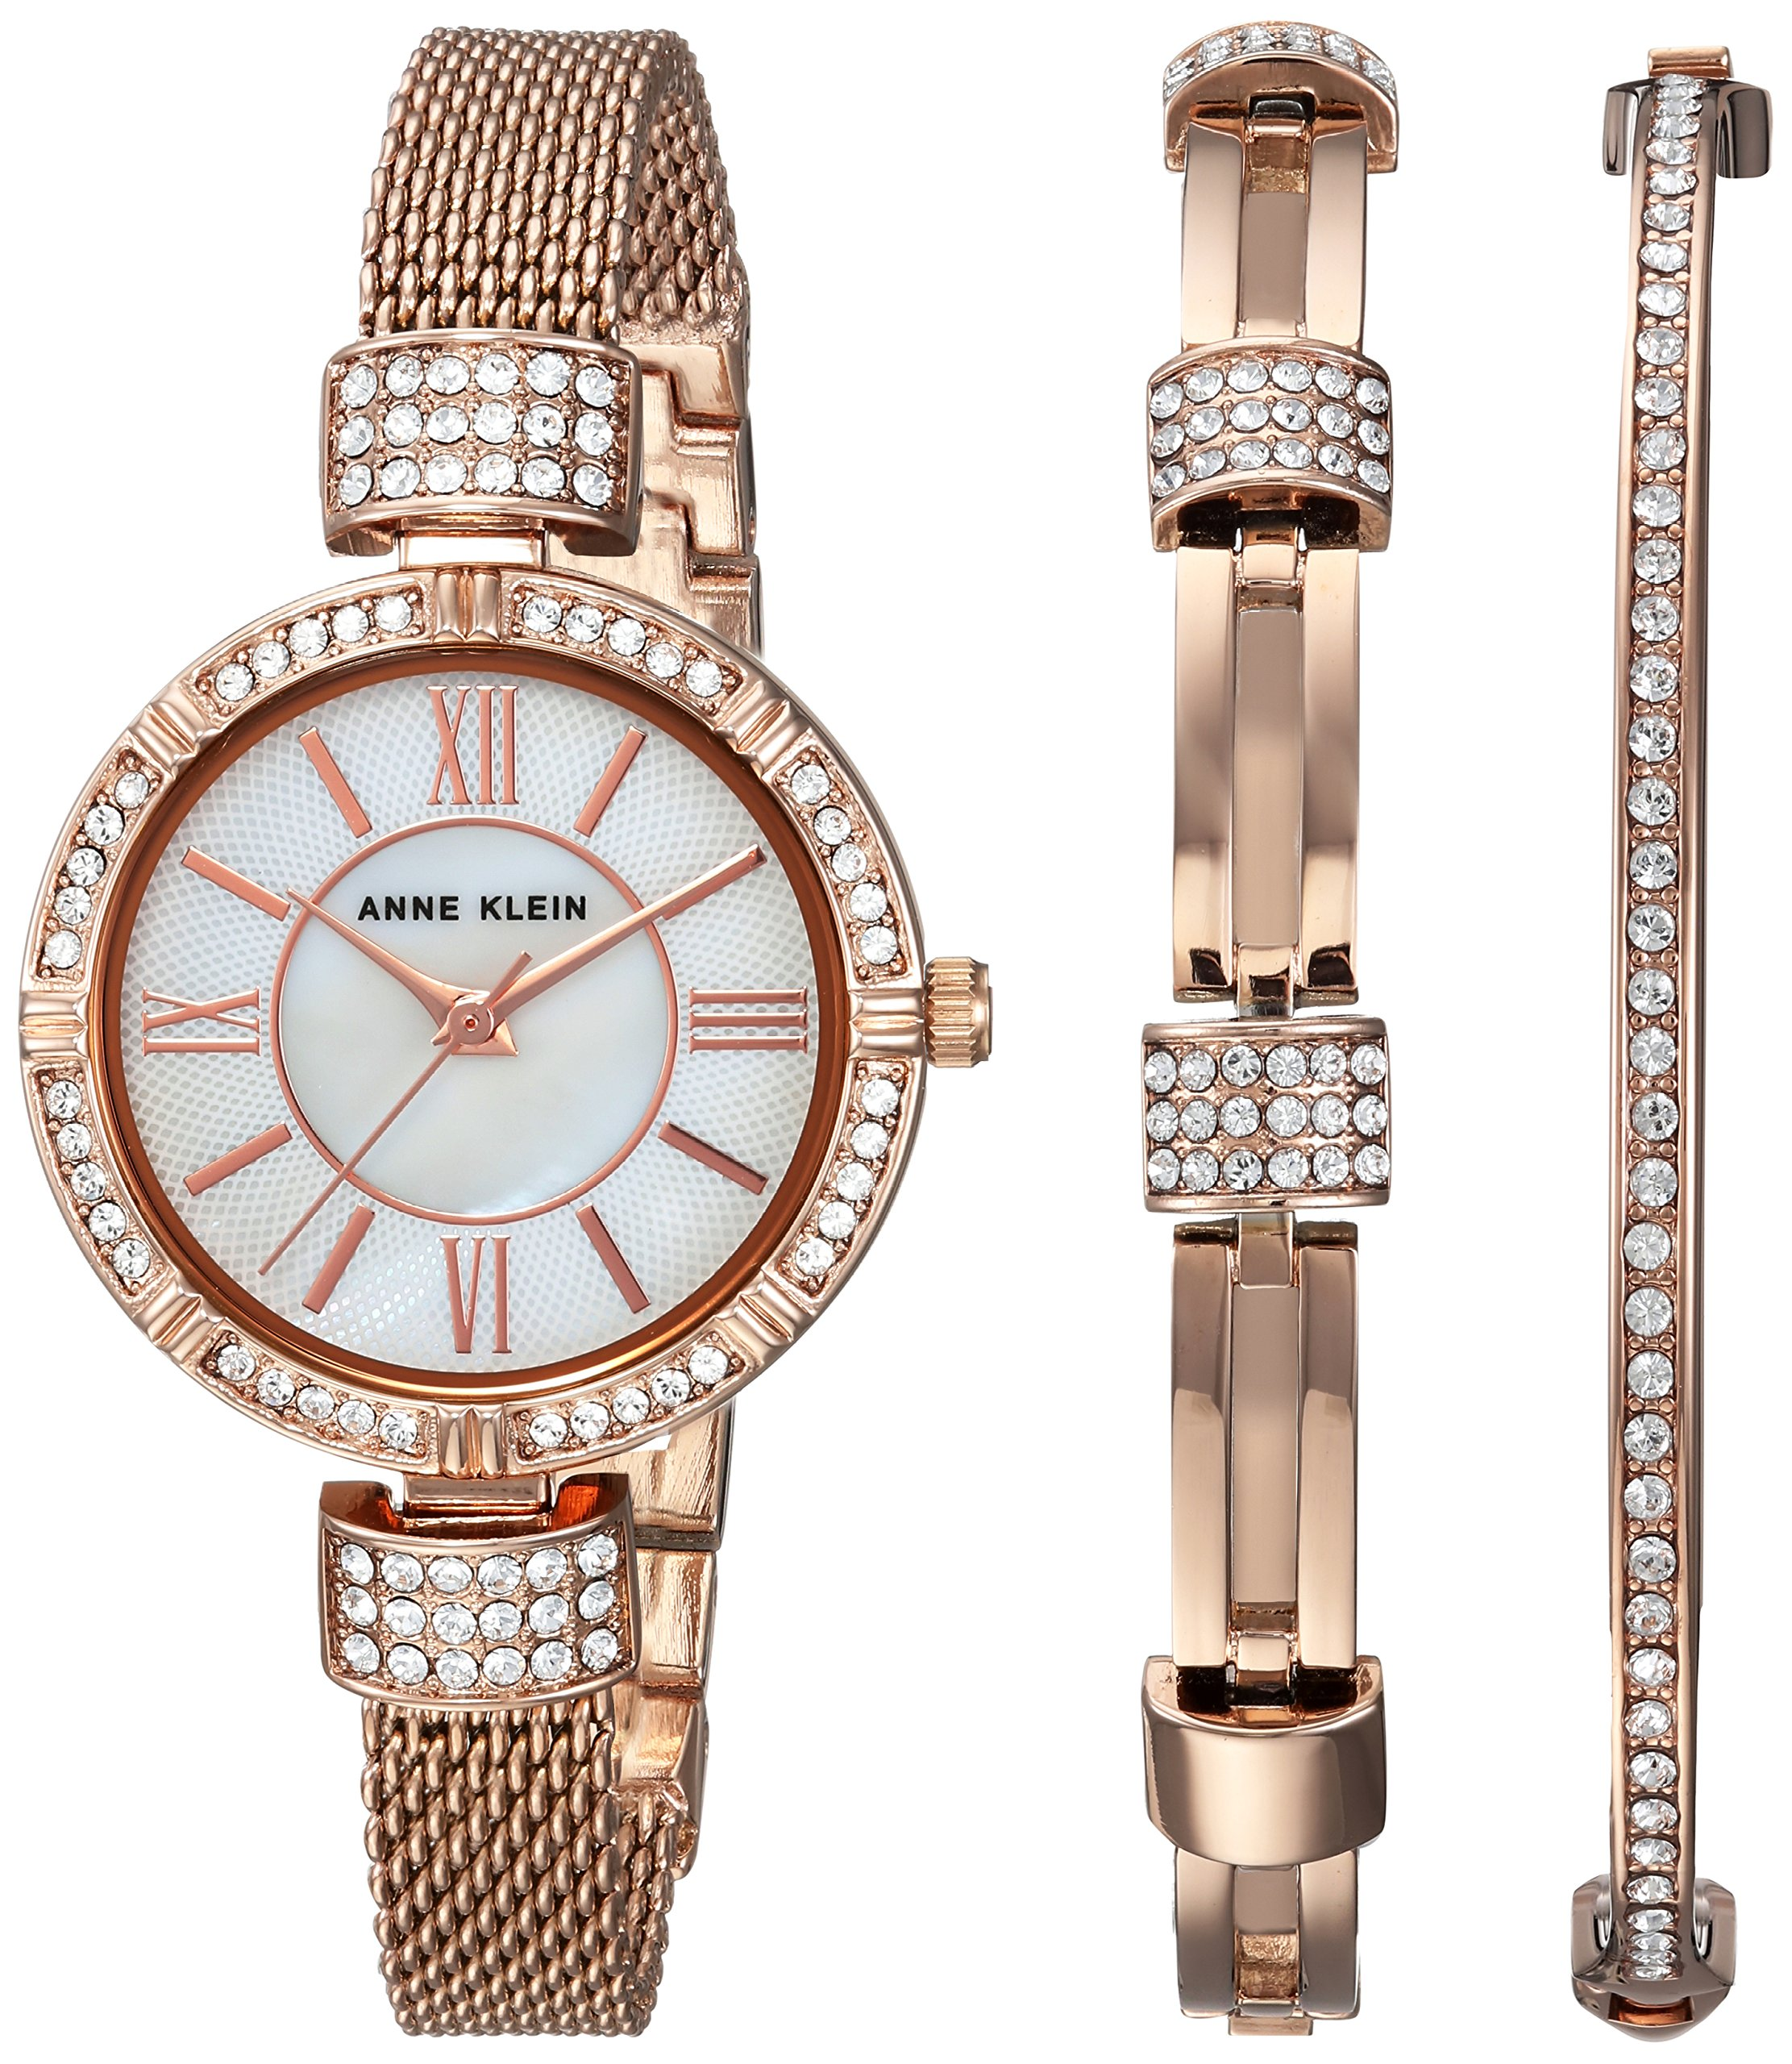 Anne Klein Women's AK/2844RGST Swarovski Crystal Accented Rose Gold-Tone Mesh Watch and Bracelet Set